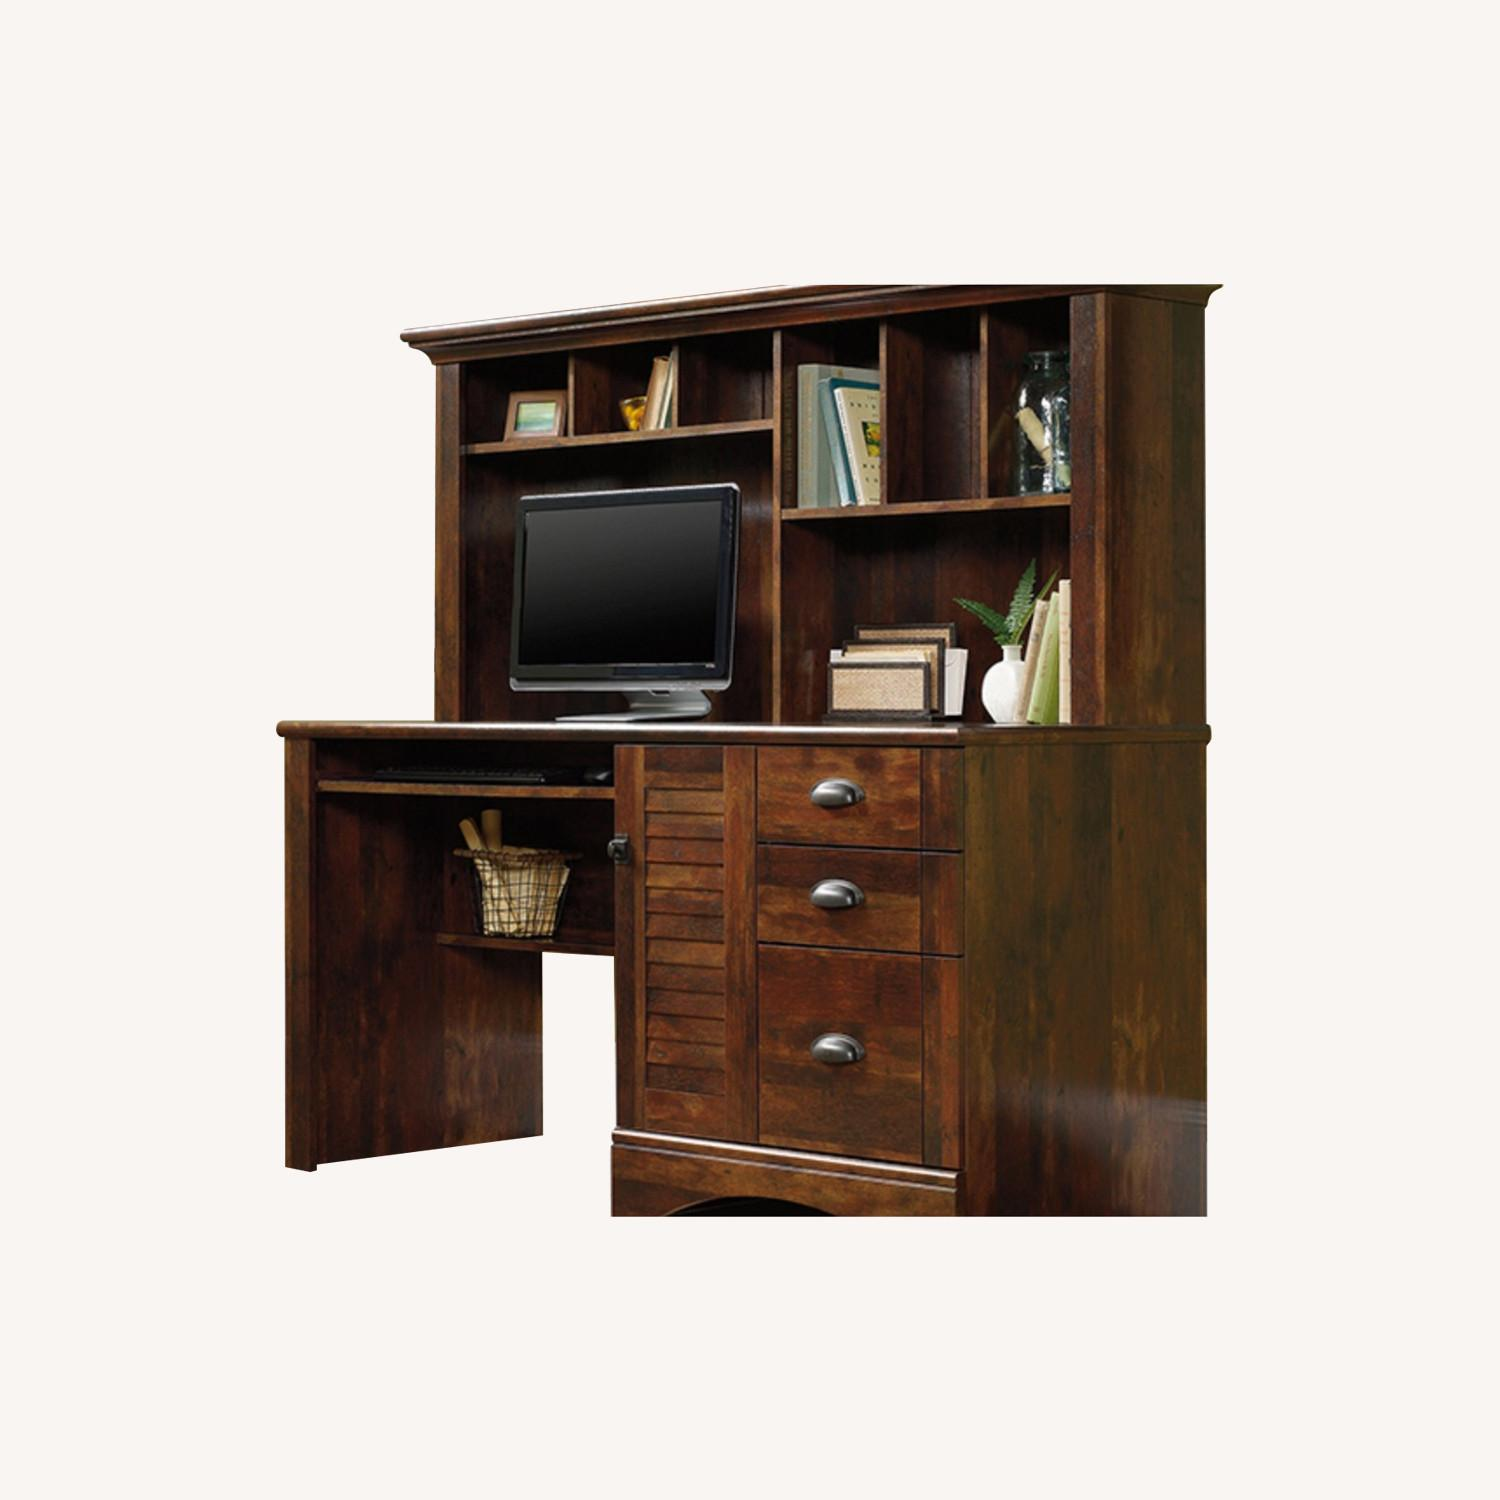 Brown Sauder Harbor View Desk with Hutch - image-0